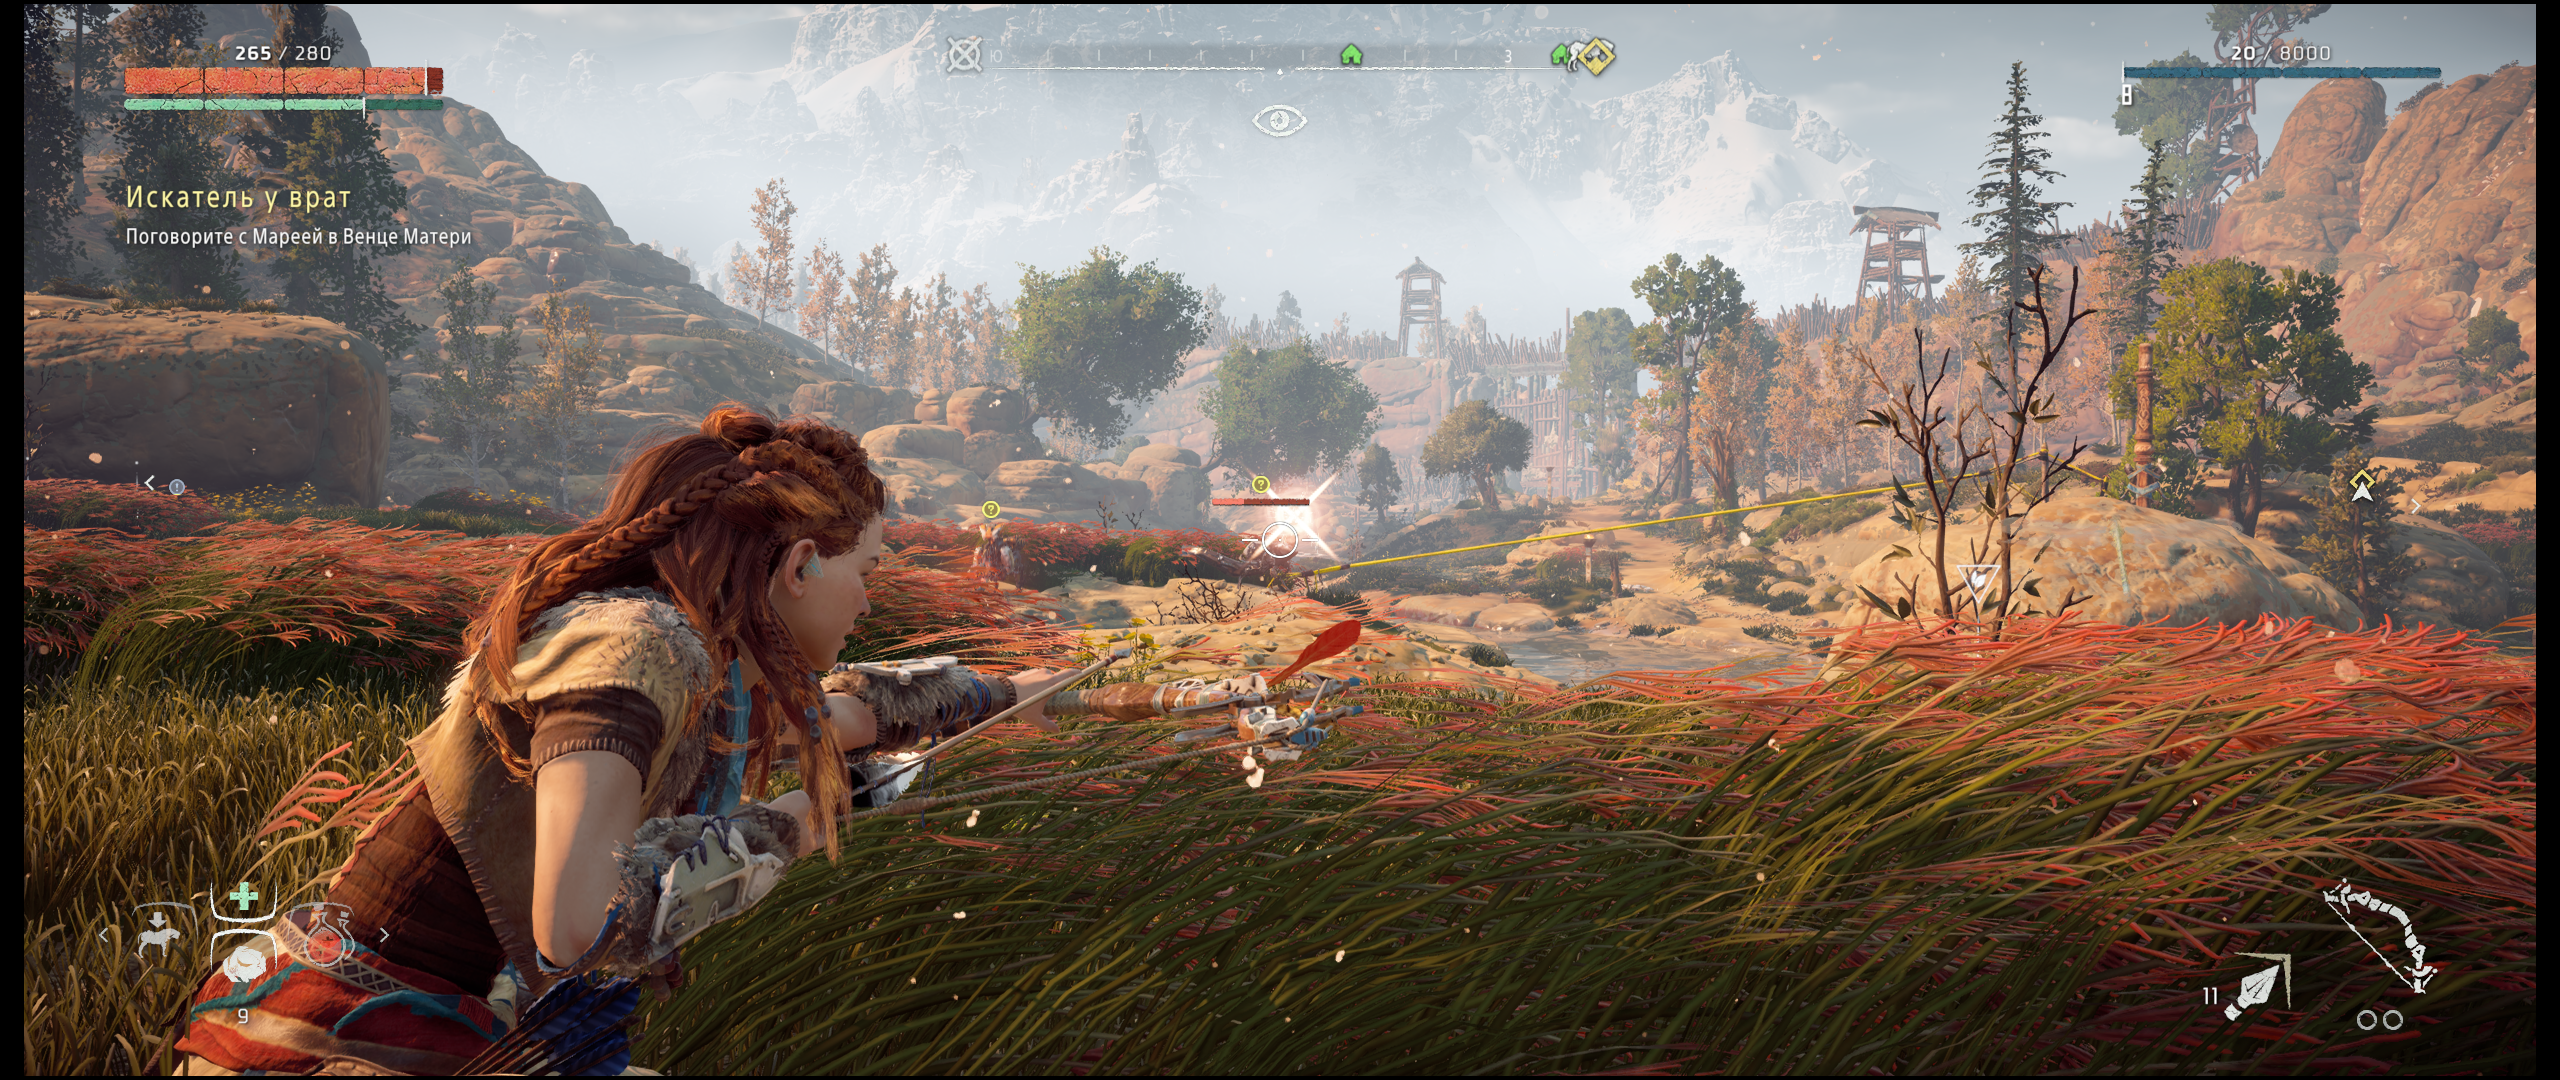 Screenshot for the game Horizon: Zero Dawn - Complete Edition v.1.0.10.5 [GOG]  (2017-2020) download torrent License